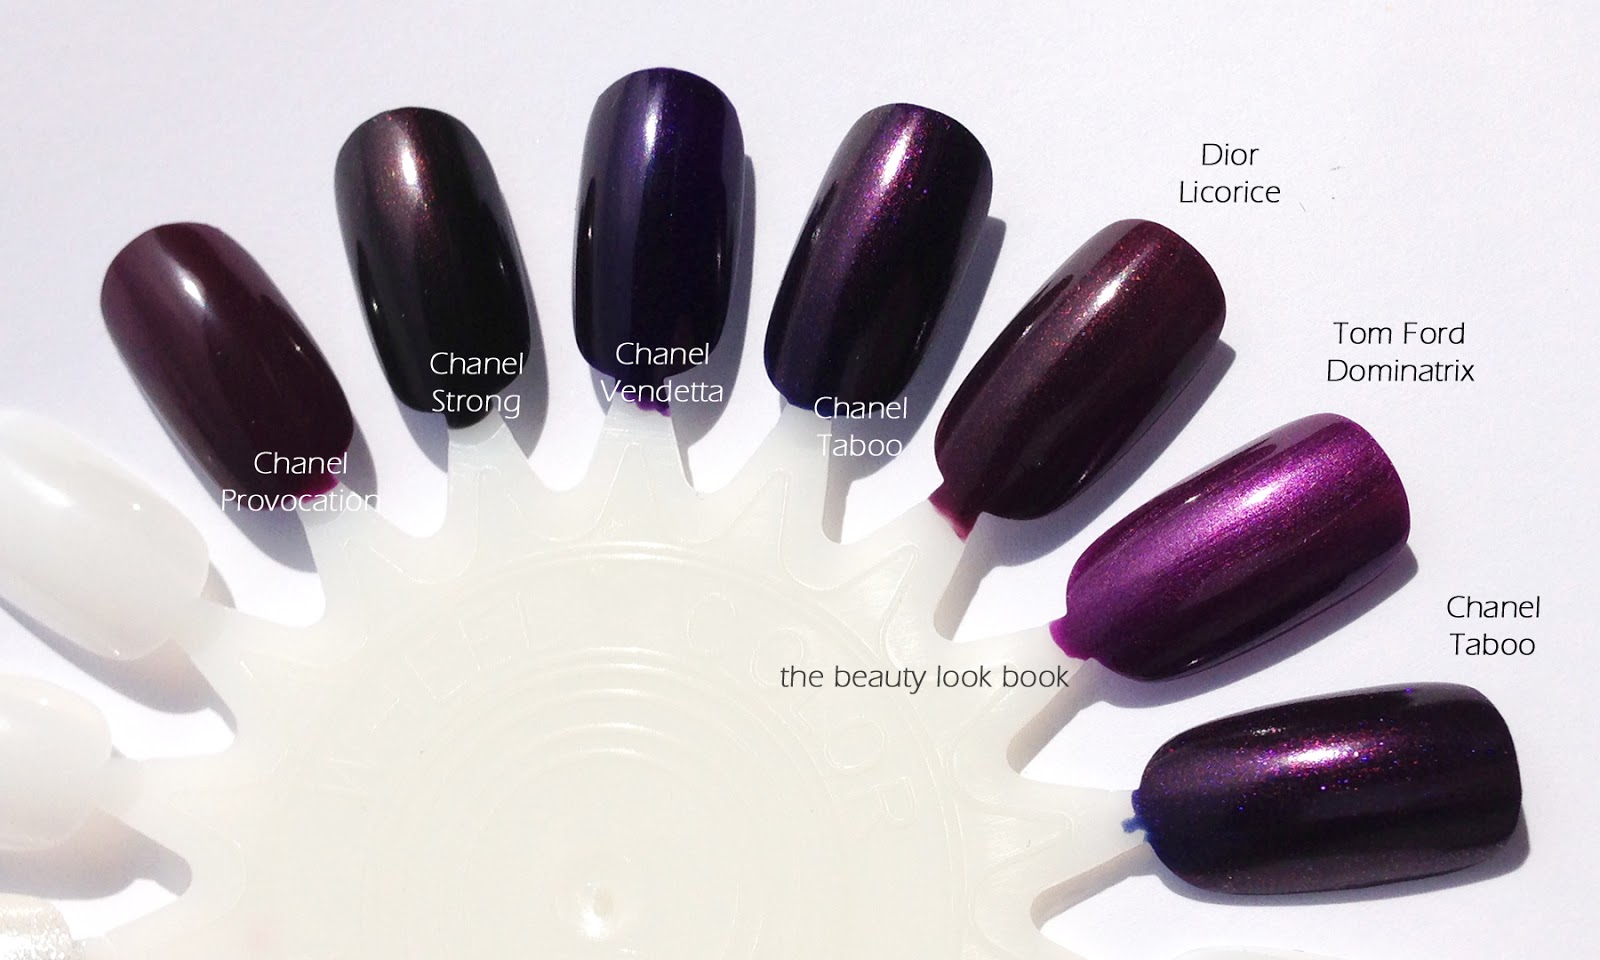 Chanel Taboo #583 Le Vernis | The Beauty Look Book